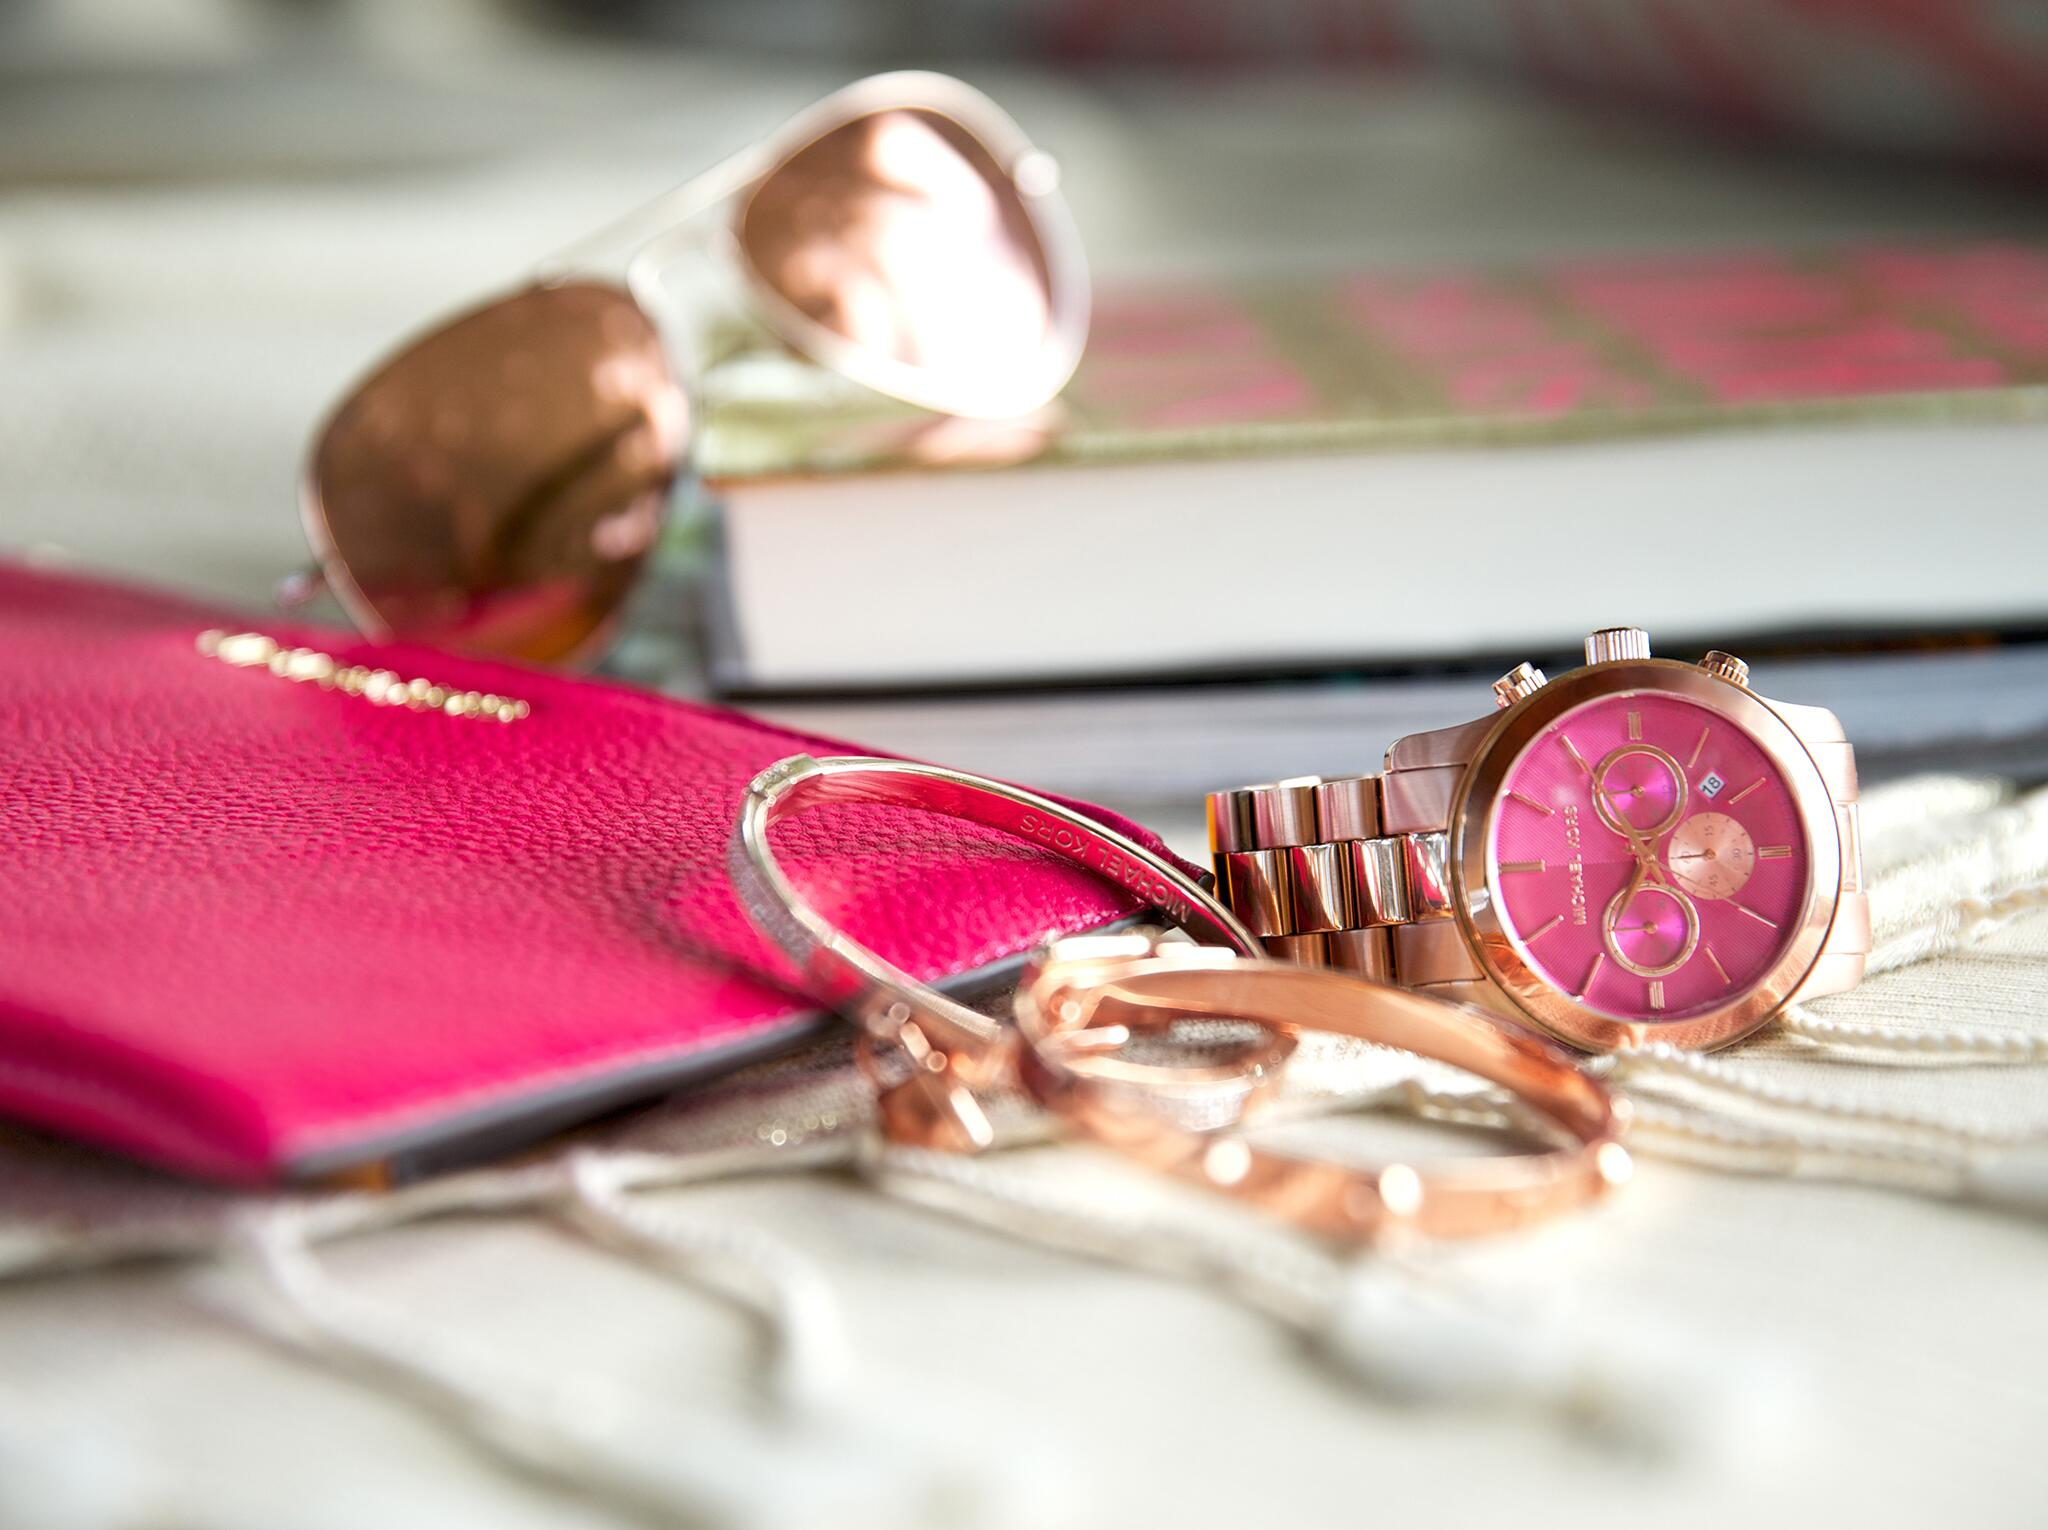 Your guide to gifting glamorously this Mother's Day. http://t.co/dBKc8tCNMC #WhatSheWants http://t.co/jJB3E2qtNc